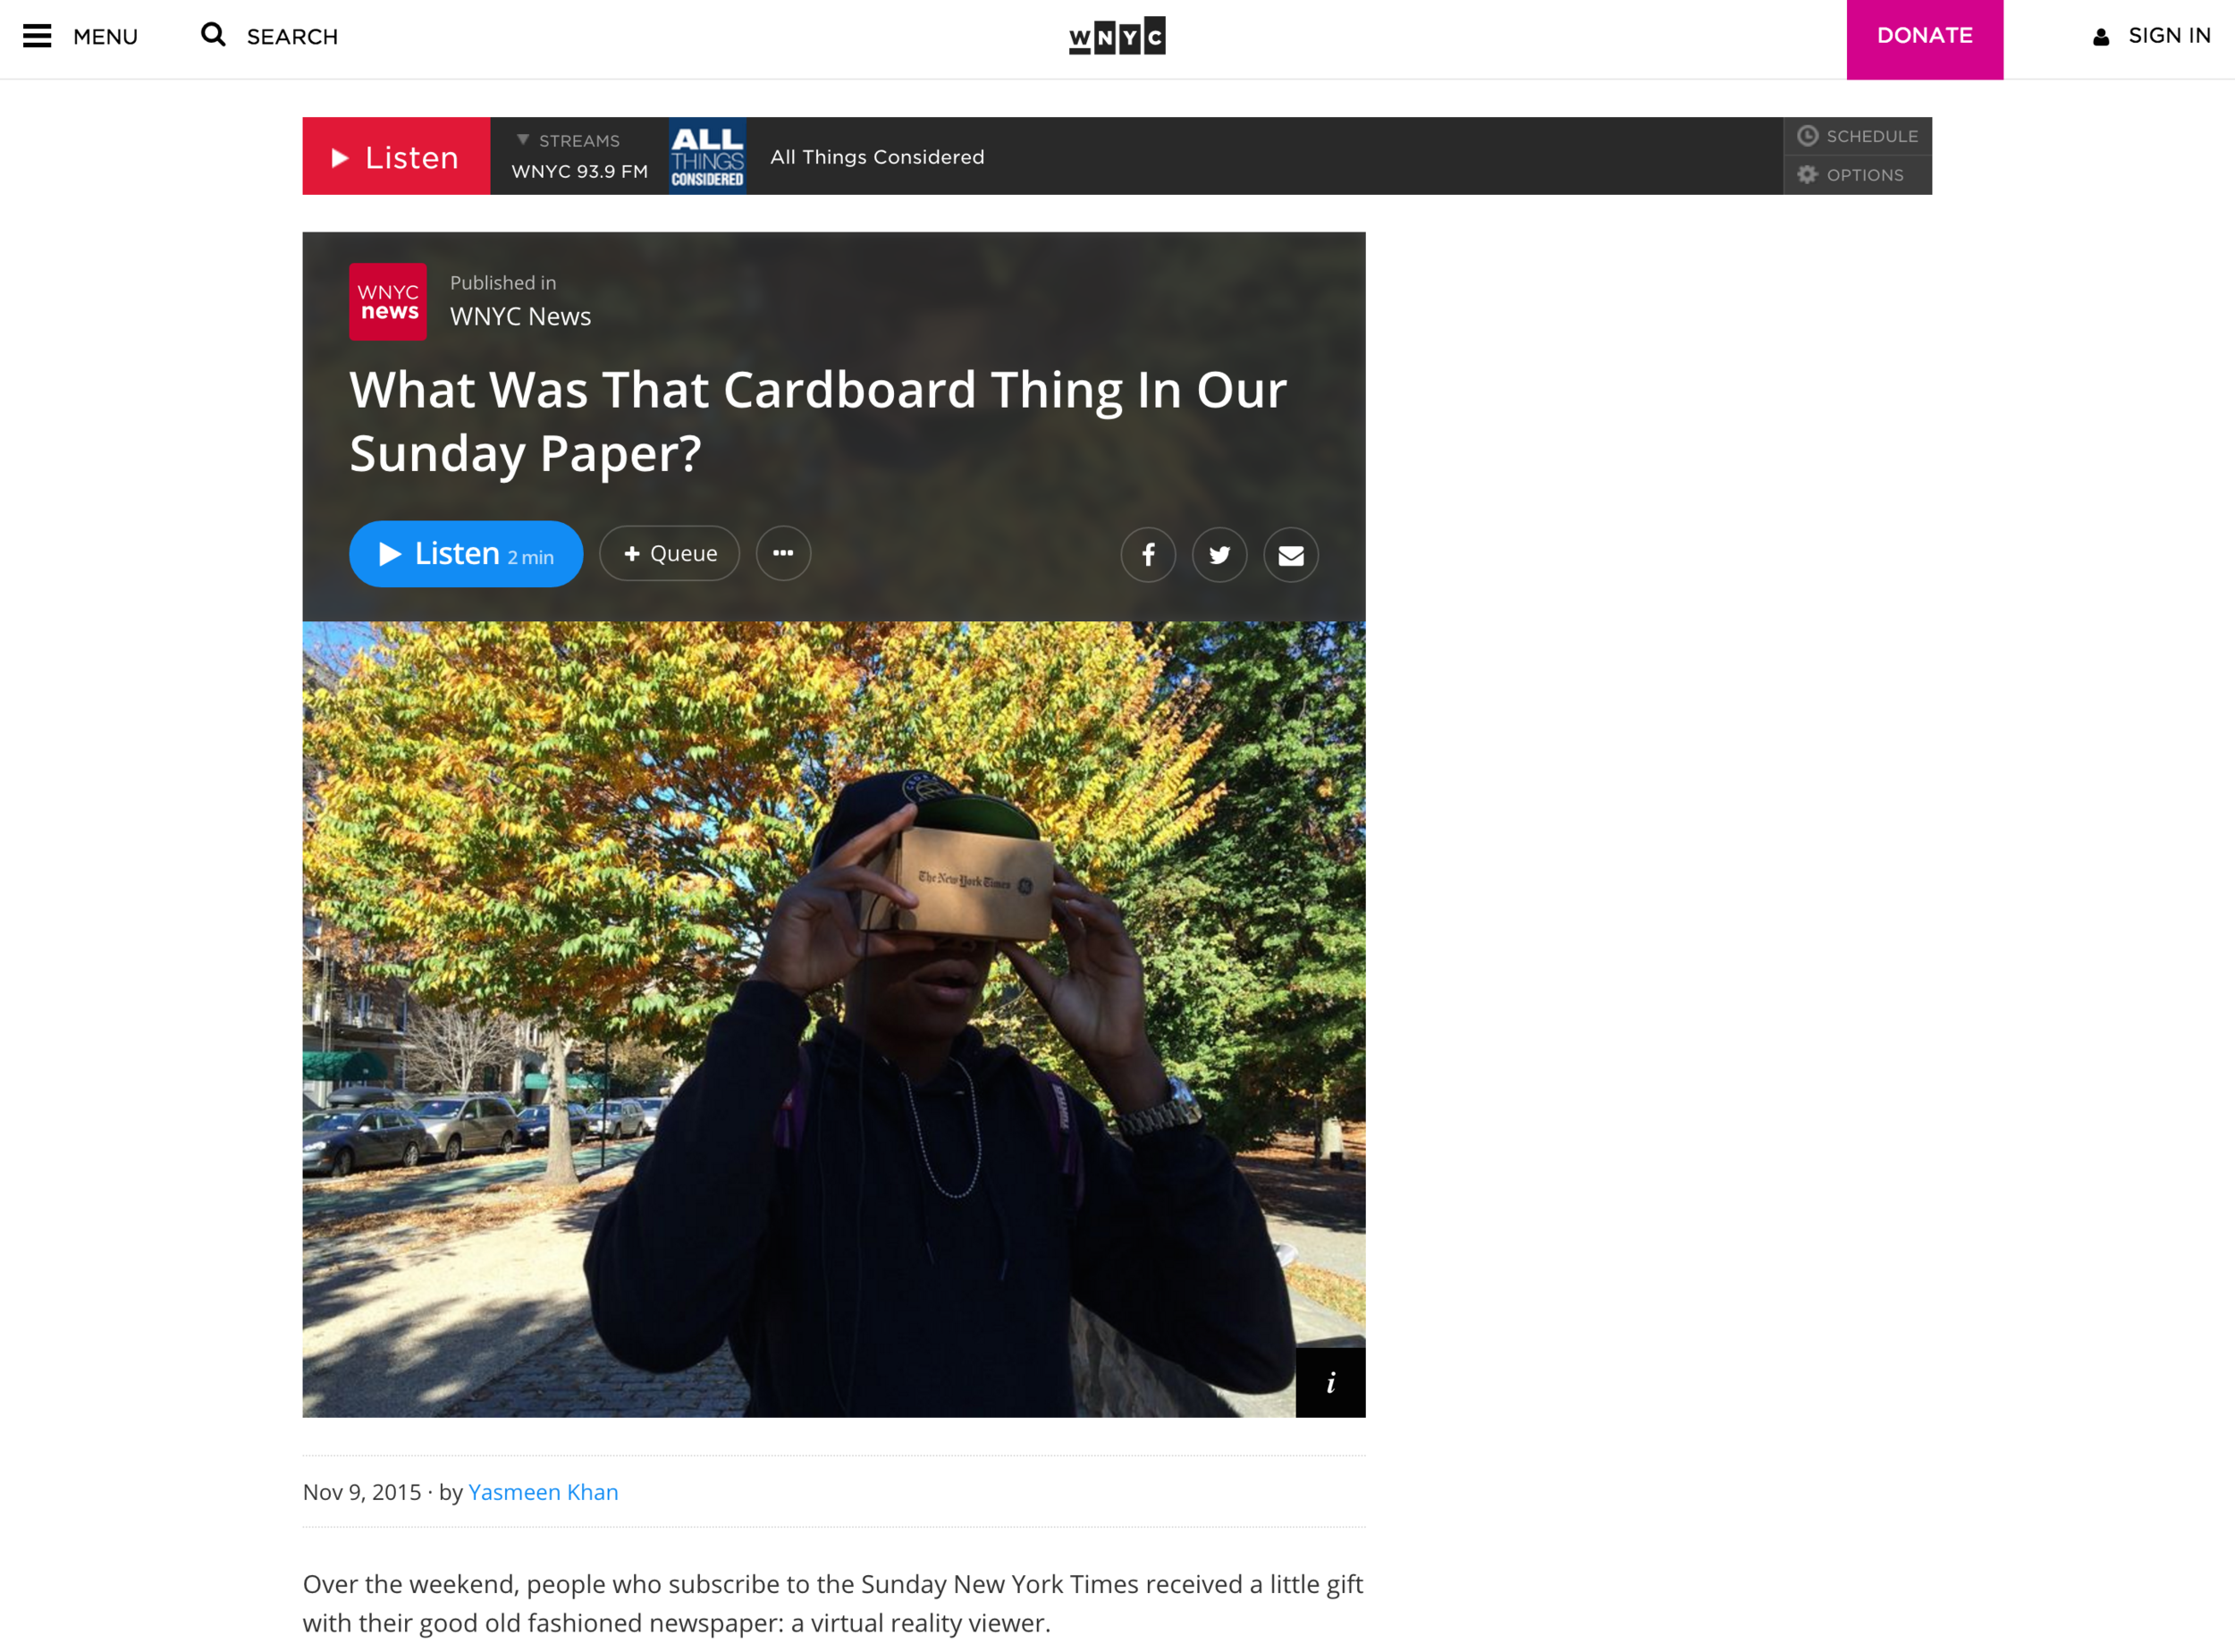 screencapture-www-wnyc-org-story-what-was-cardboard-thing-our-sunday-paper-1447202258447.png